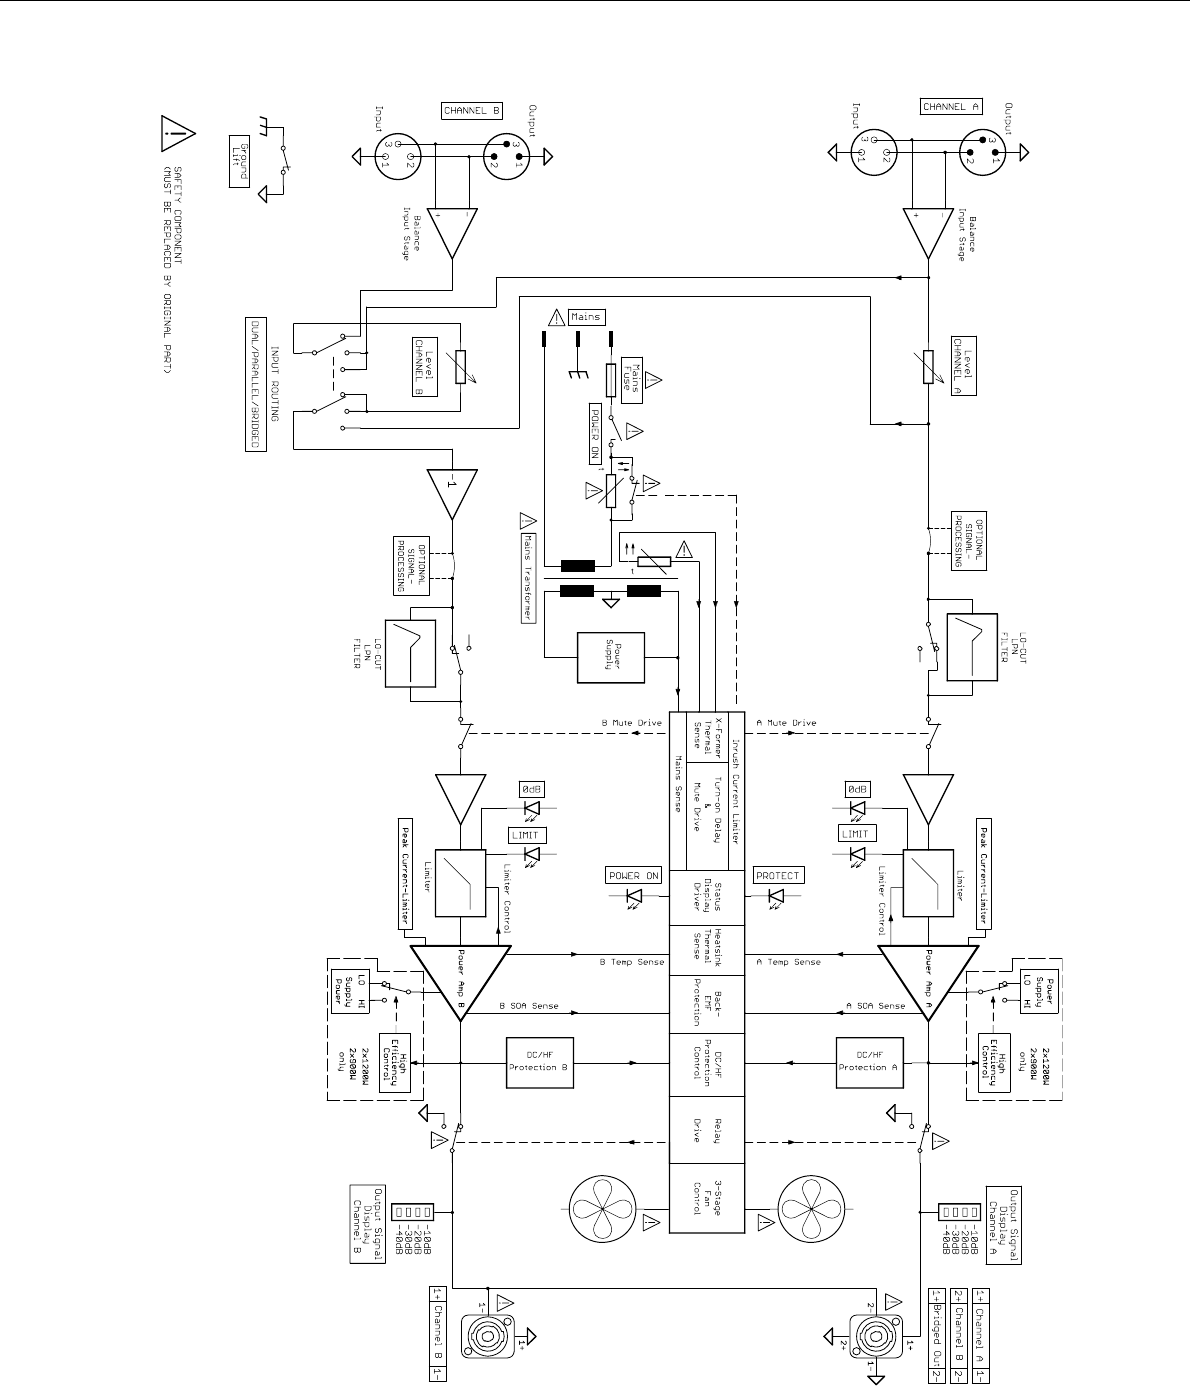 Contactor wiring schematic for reversing pm motors array page 24 of electro voice stereo lifier q99 user guide rh audio manualsonline